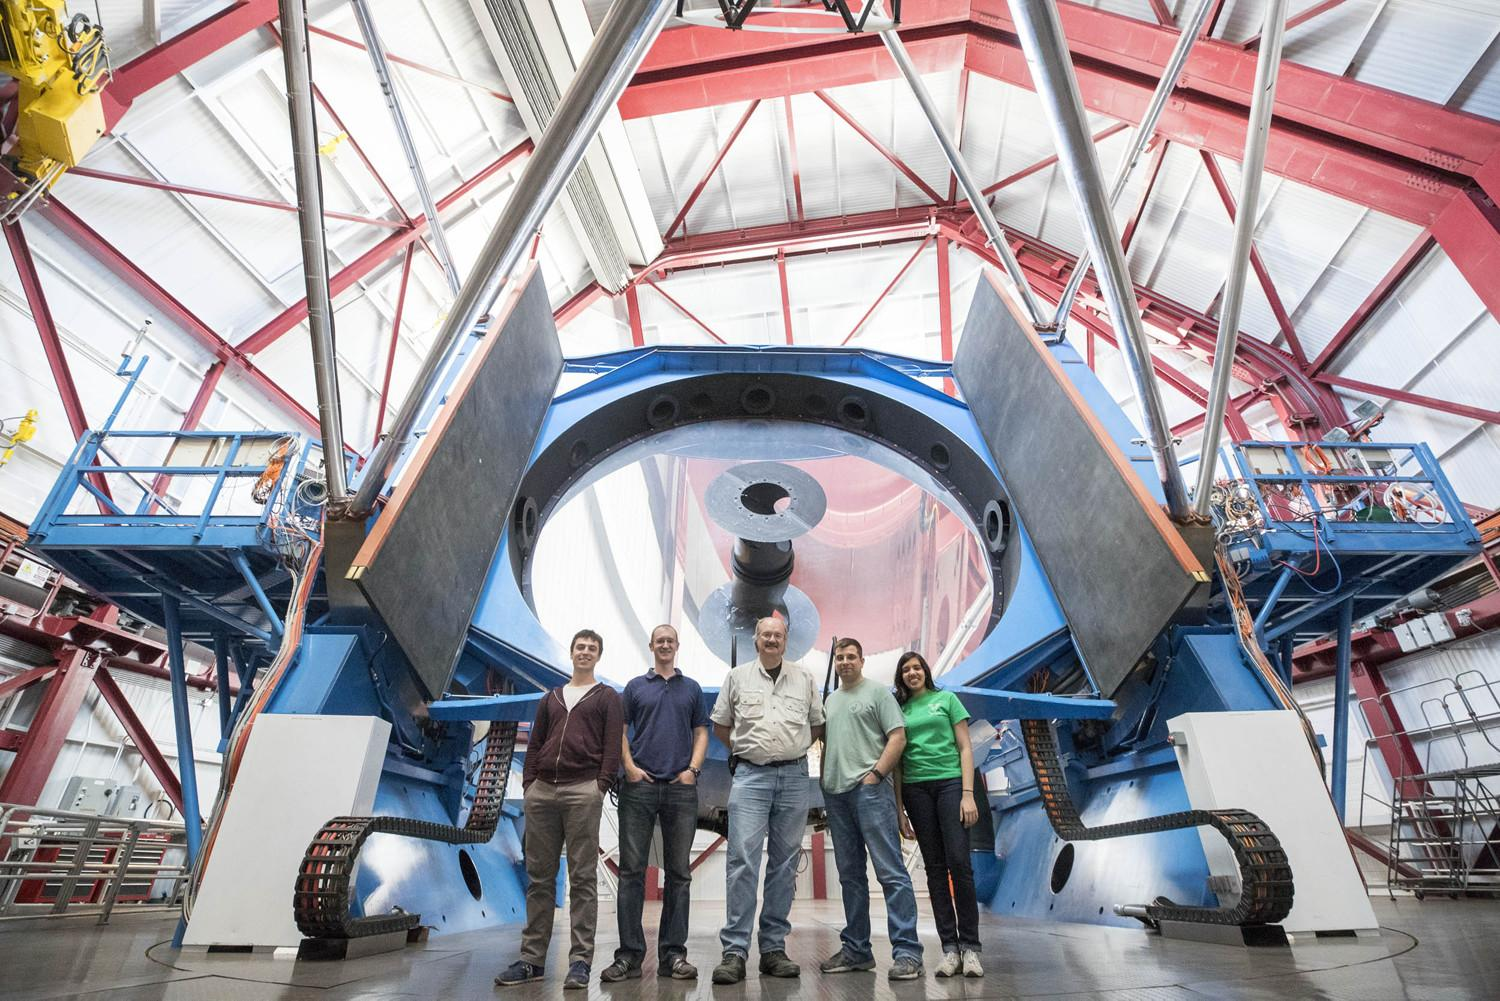 A UVA team is in Chile installing the APOGEE astronomical instrument. They recently visited the nearby Magellan telescope, pictured, and received a tour from astronomers there. (Photos by Sanjay Suchak, University Communications)